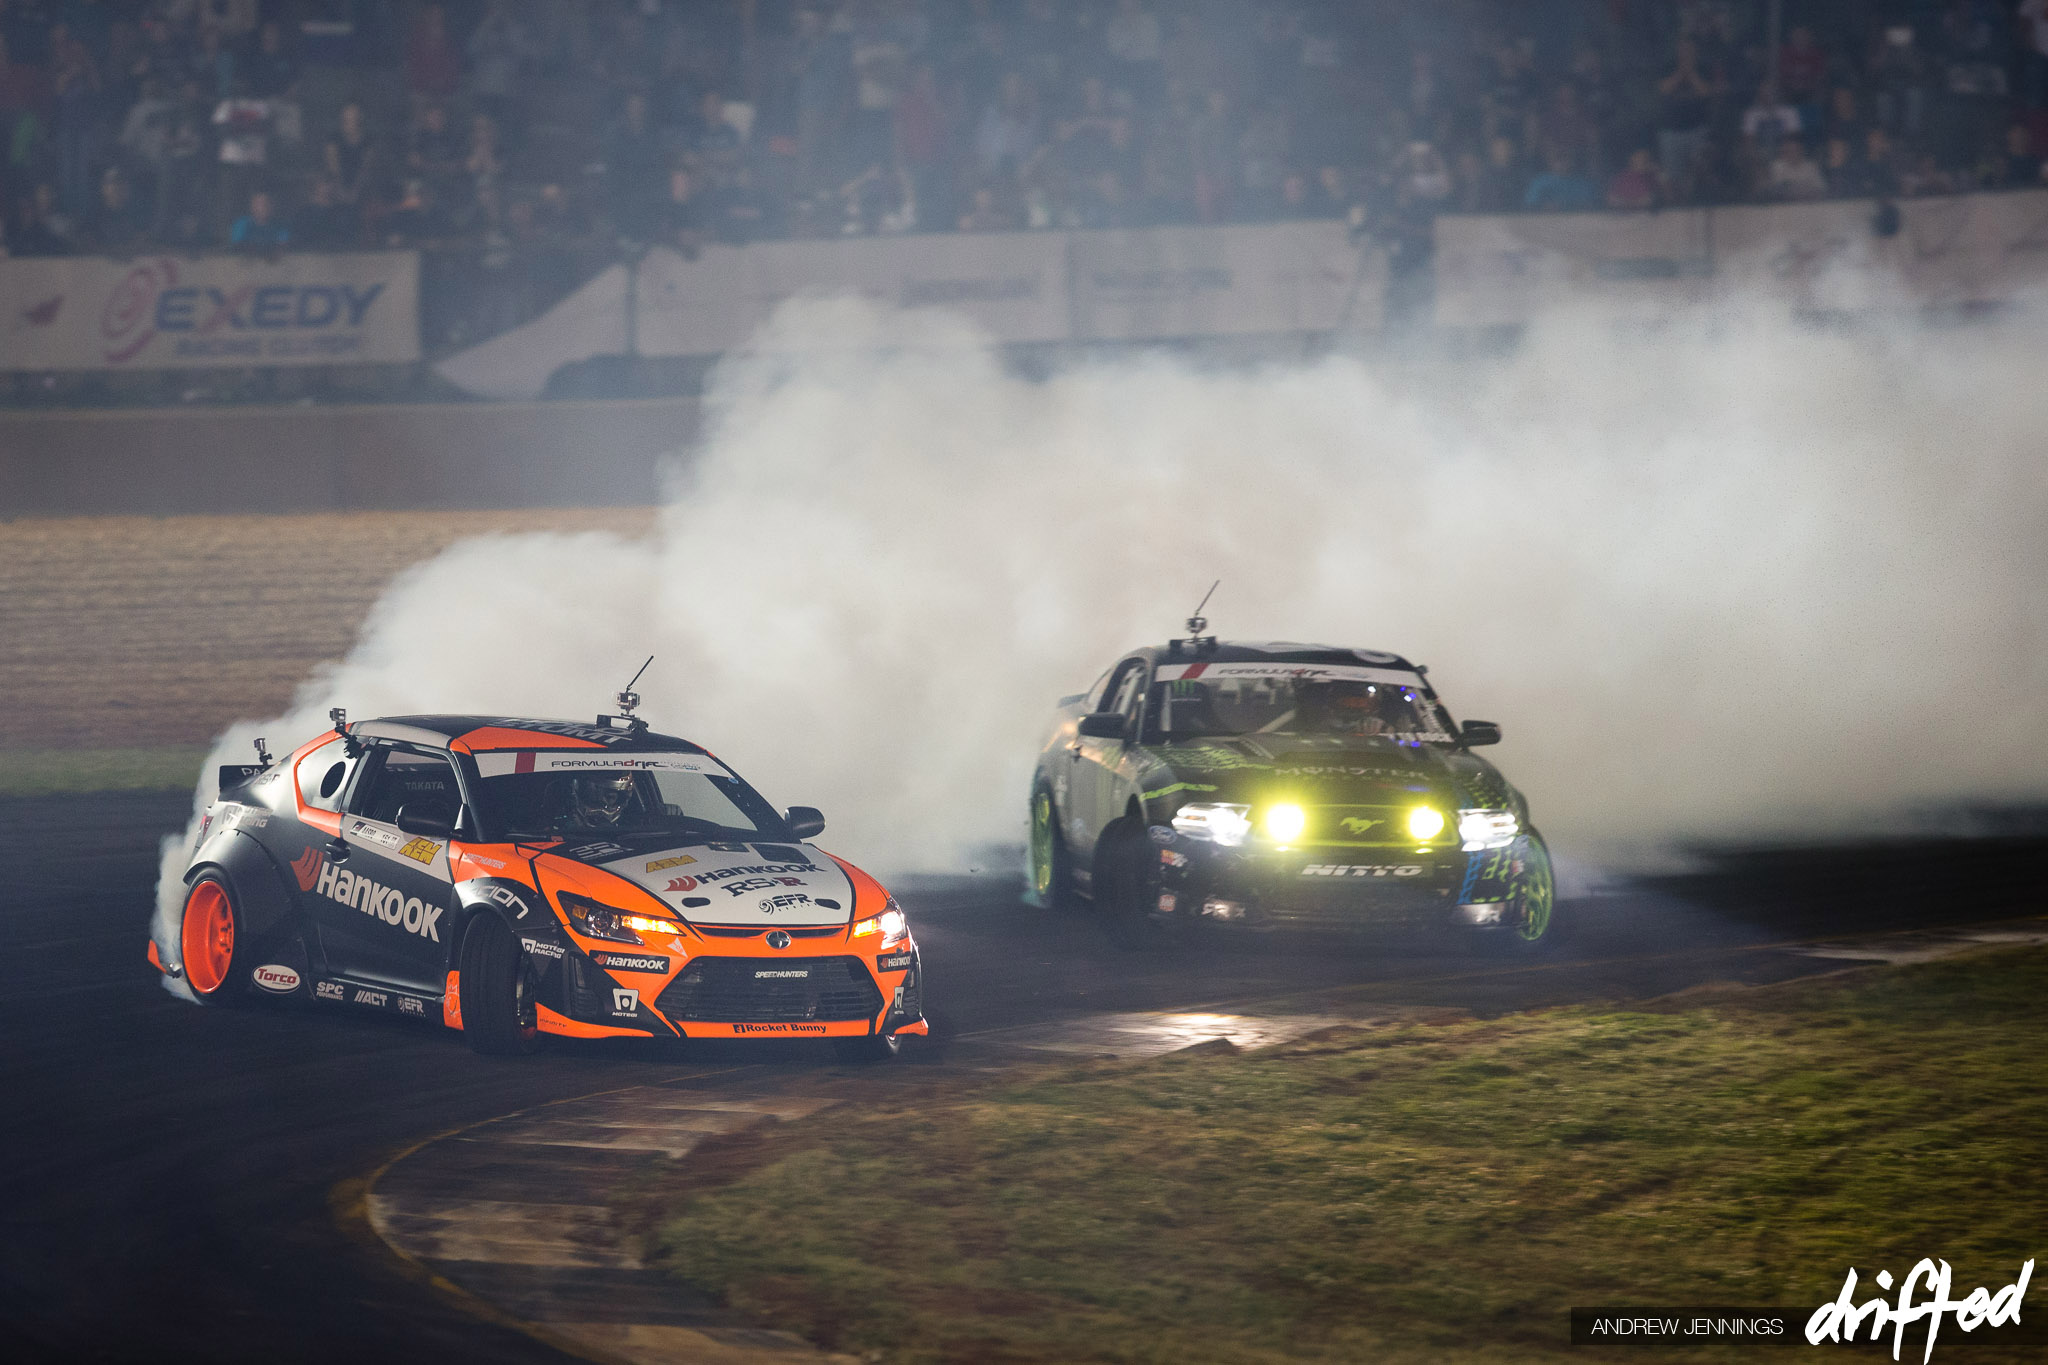 Fredric Aasbo vs. Vaughn Gittin Jr.